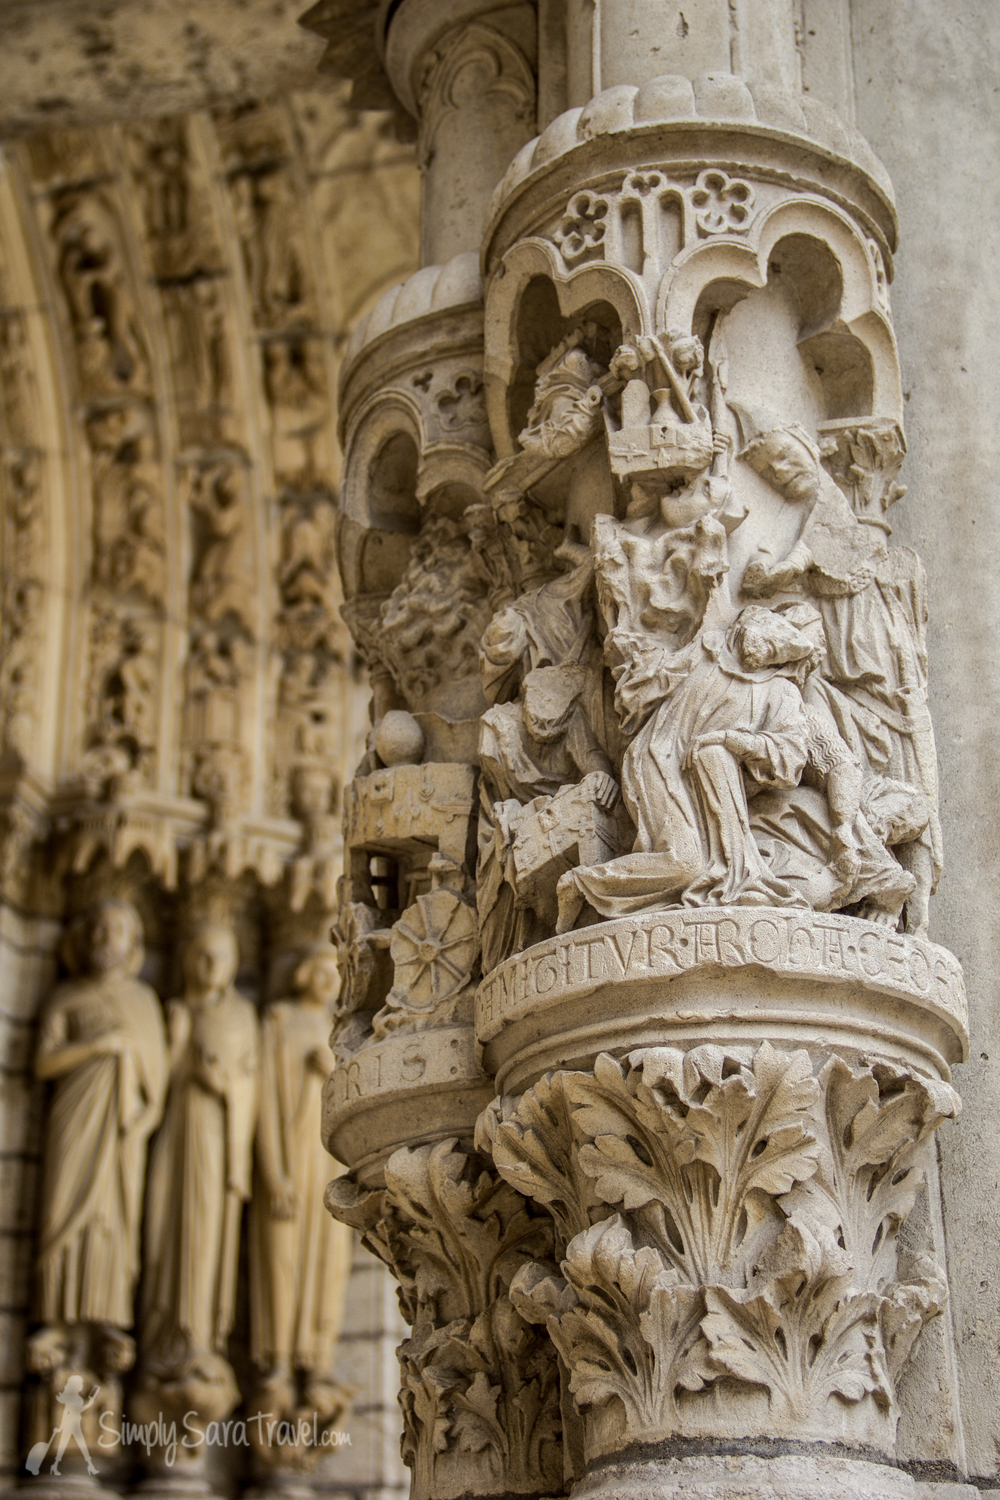 Every inch of the North Porch was full of rich detail.